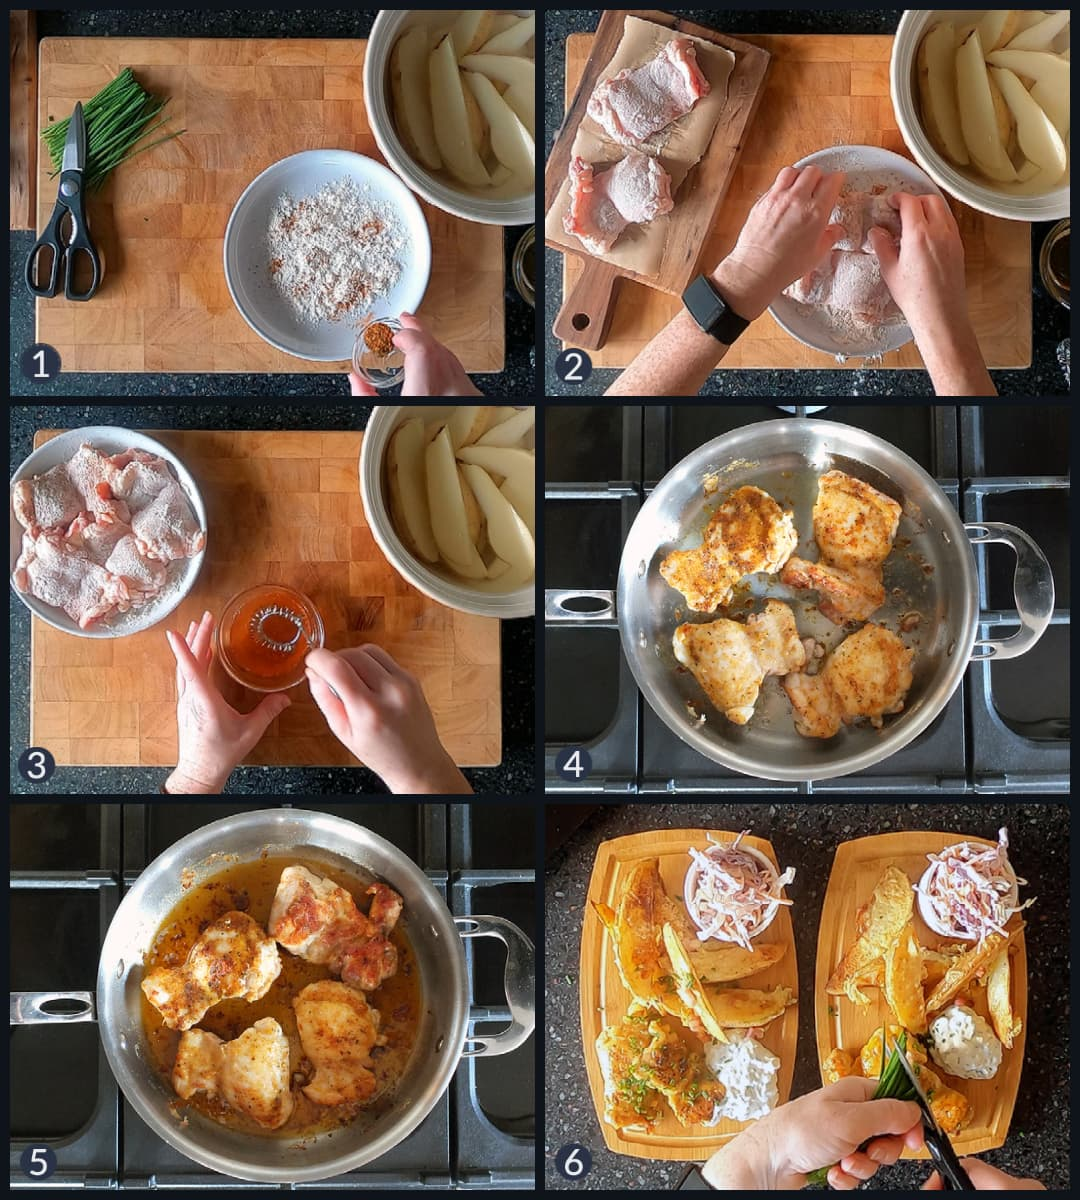 Six step collage image depicting the different steps to making a Superbowl chicken recipe.